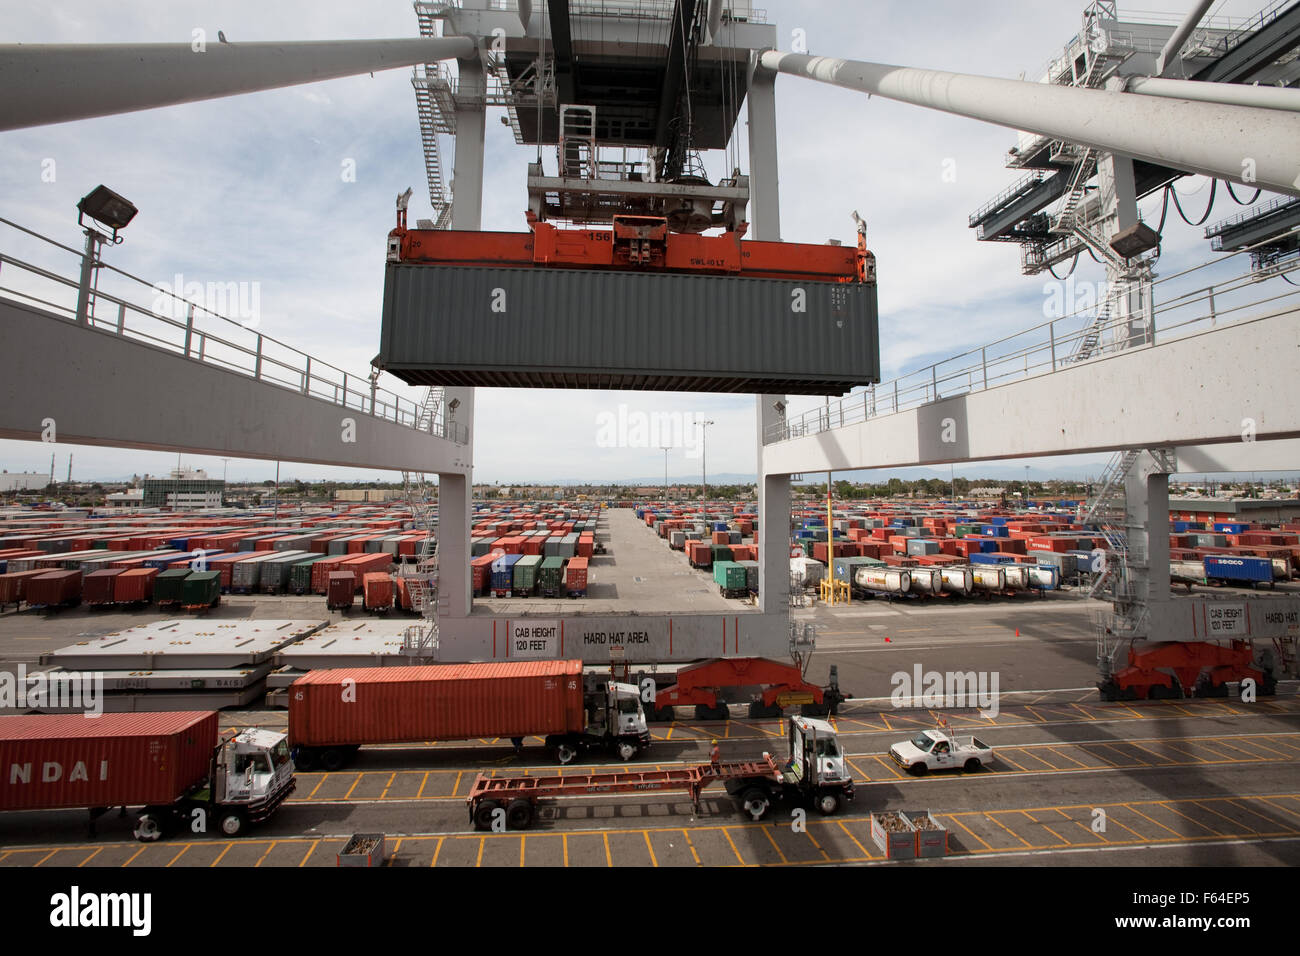 shipping container being loaded on ship - Stock Image